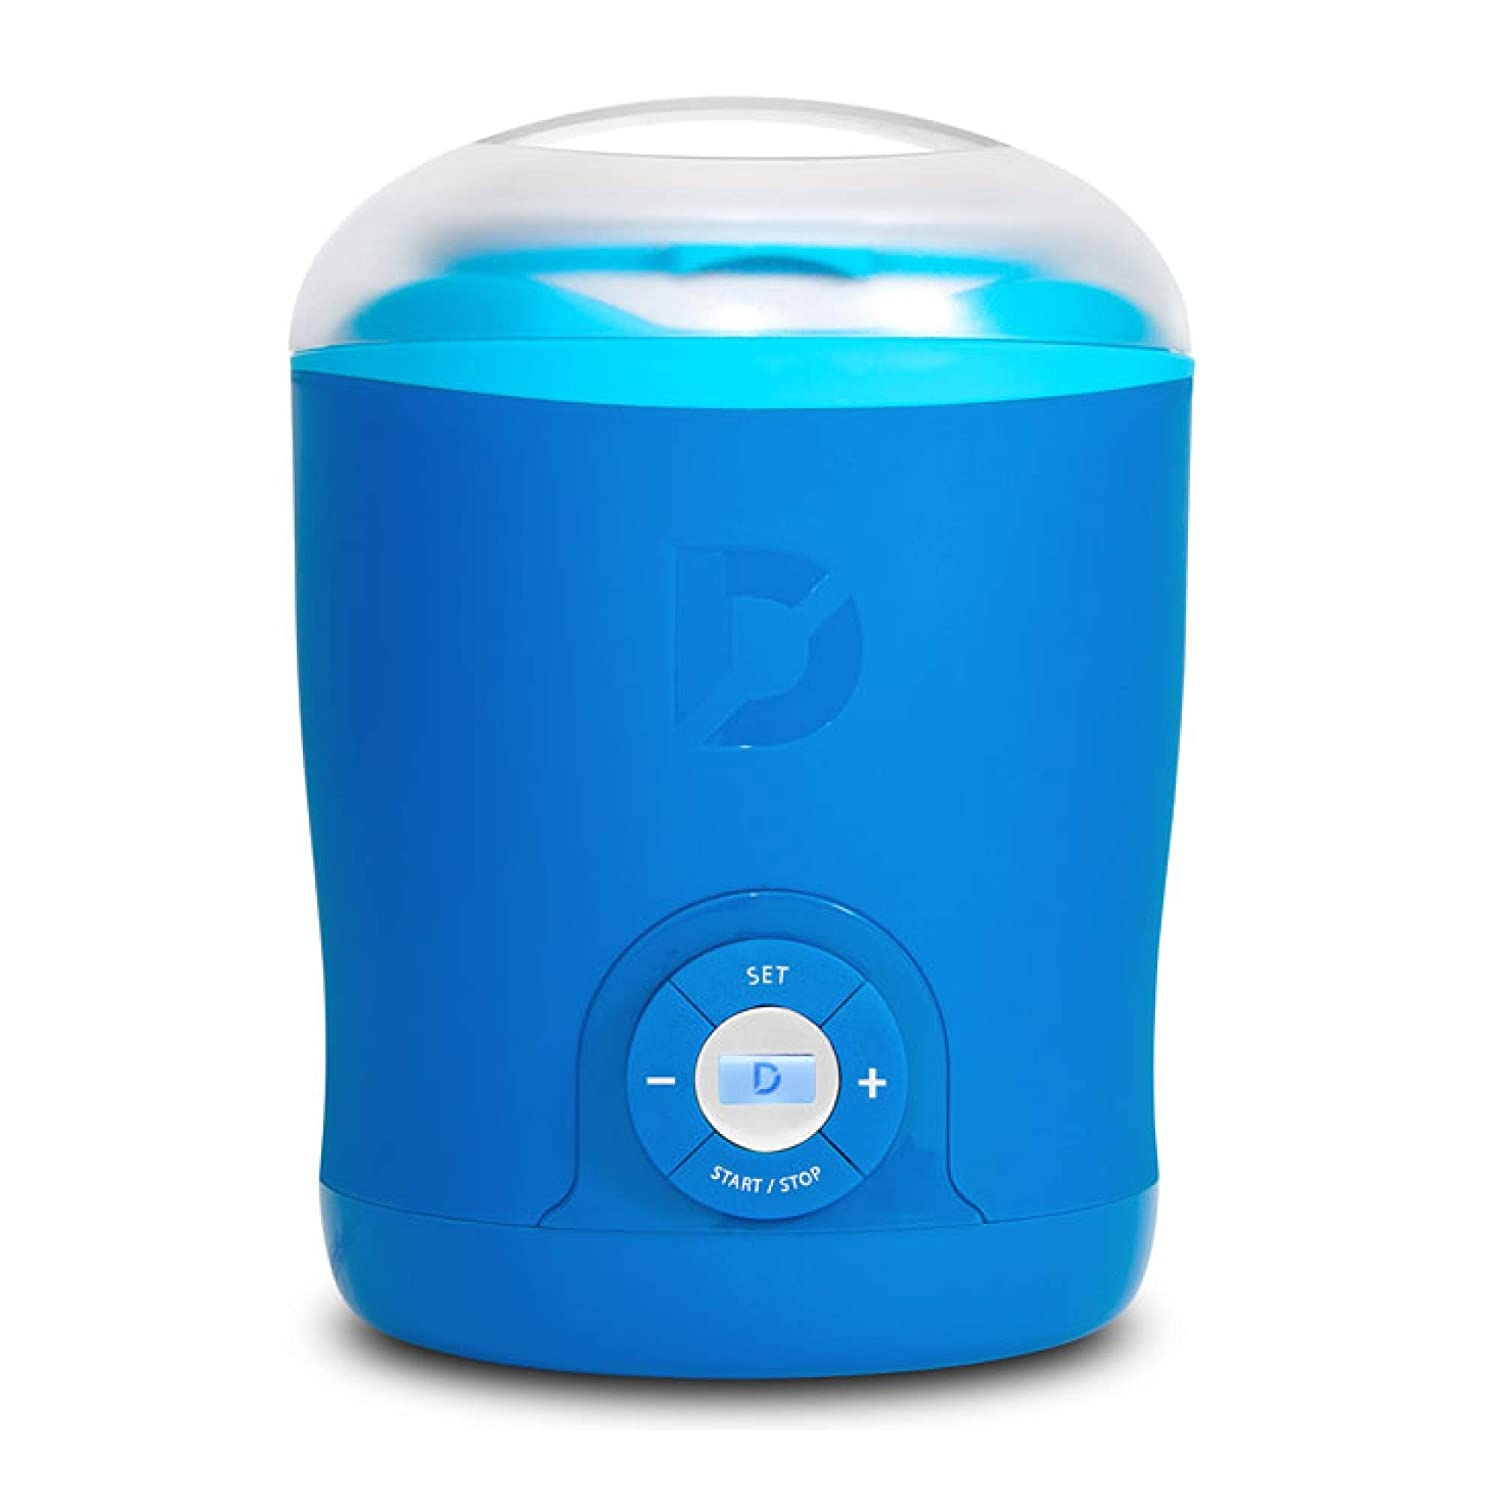 Dash Greek Yogurt Maker Machine with LCD Display 2 BPA-Free Storage Containers with Lids, Blue